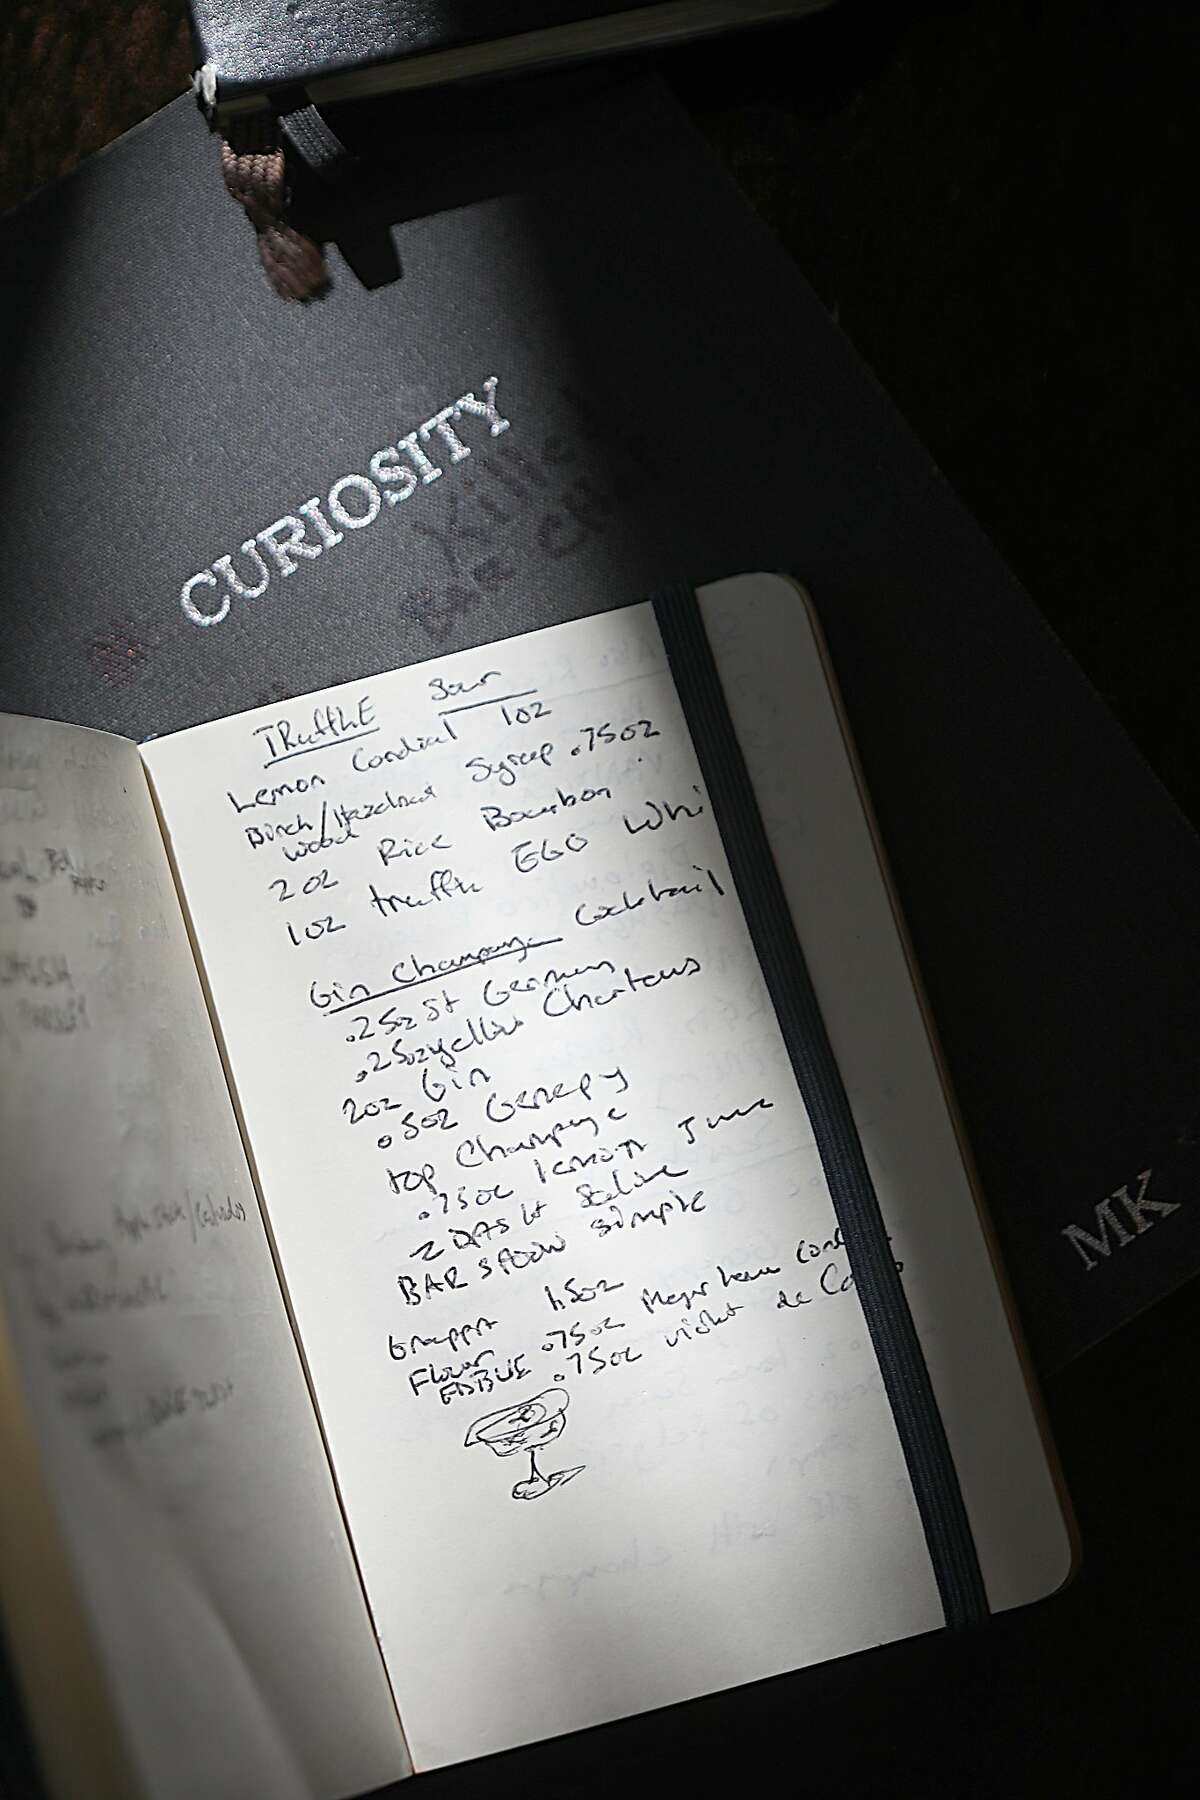 Head bartender Michael Kudra has several notebooks including this one where he constantly tries various combinations to create and tweek drinks on Monday, March 18, 2019, in San Francisco, Calif.